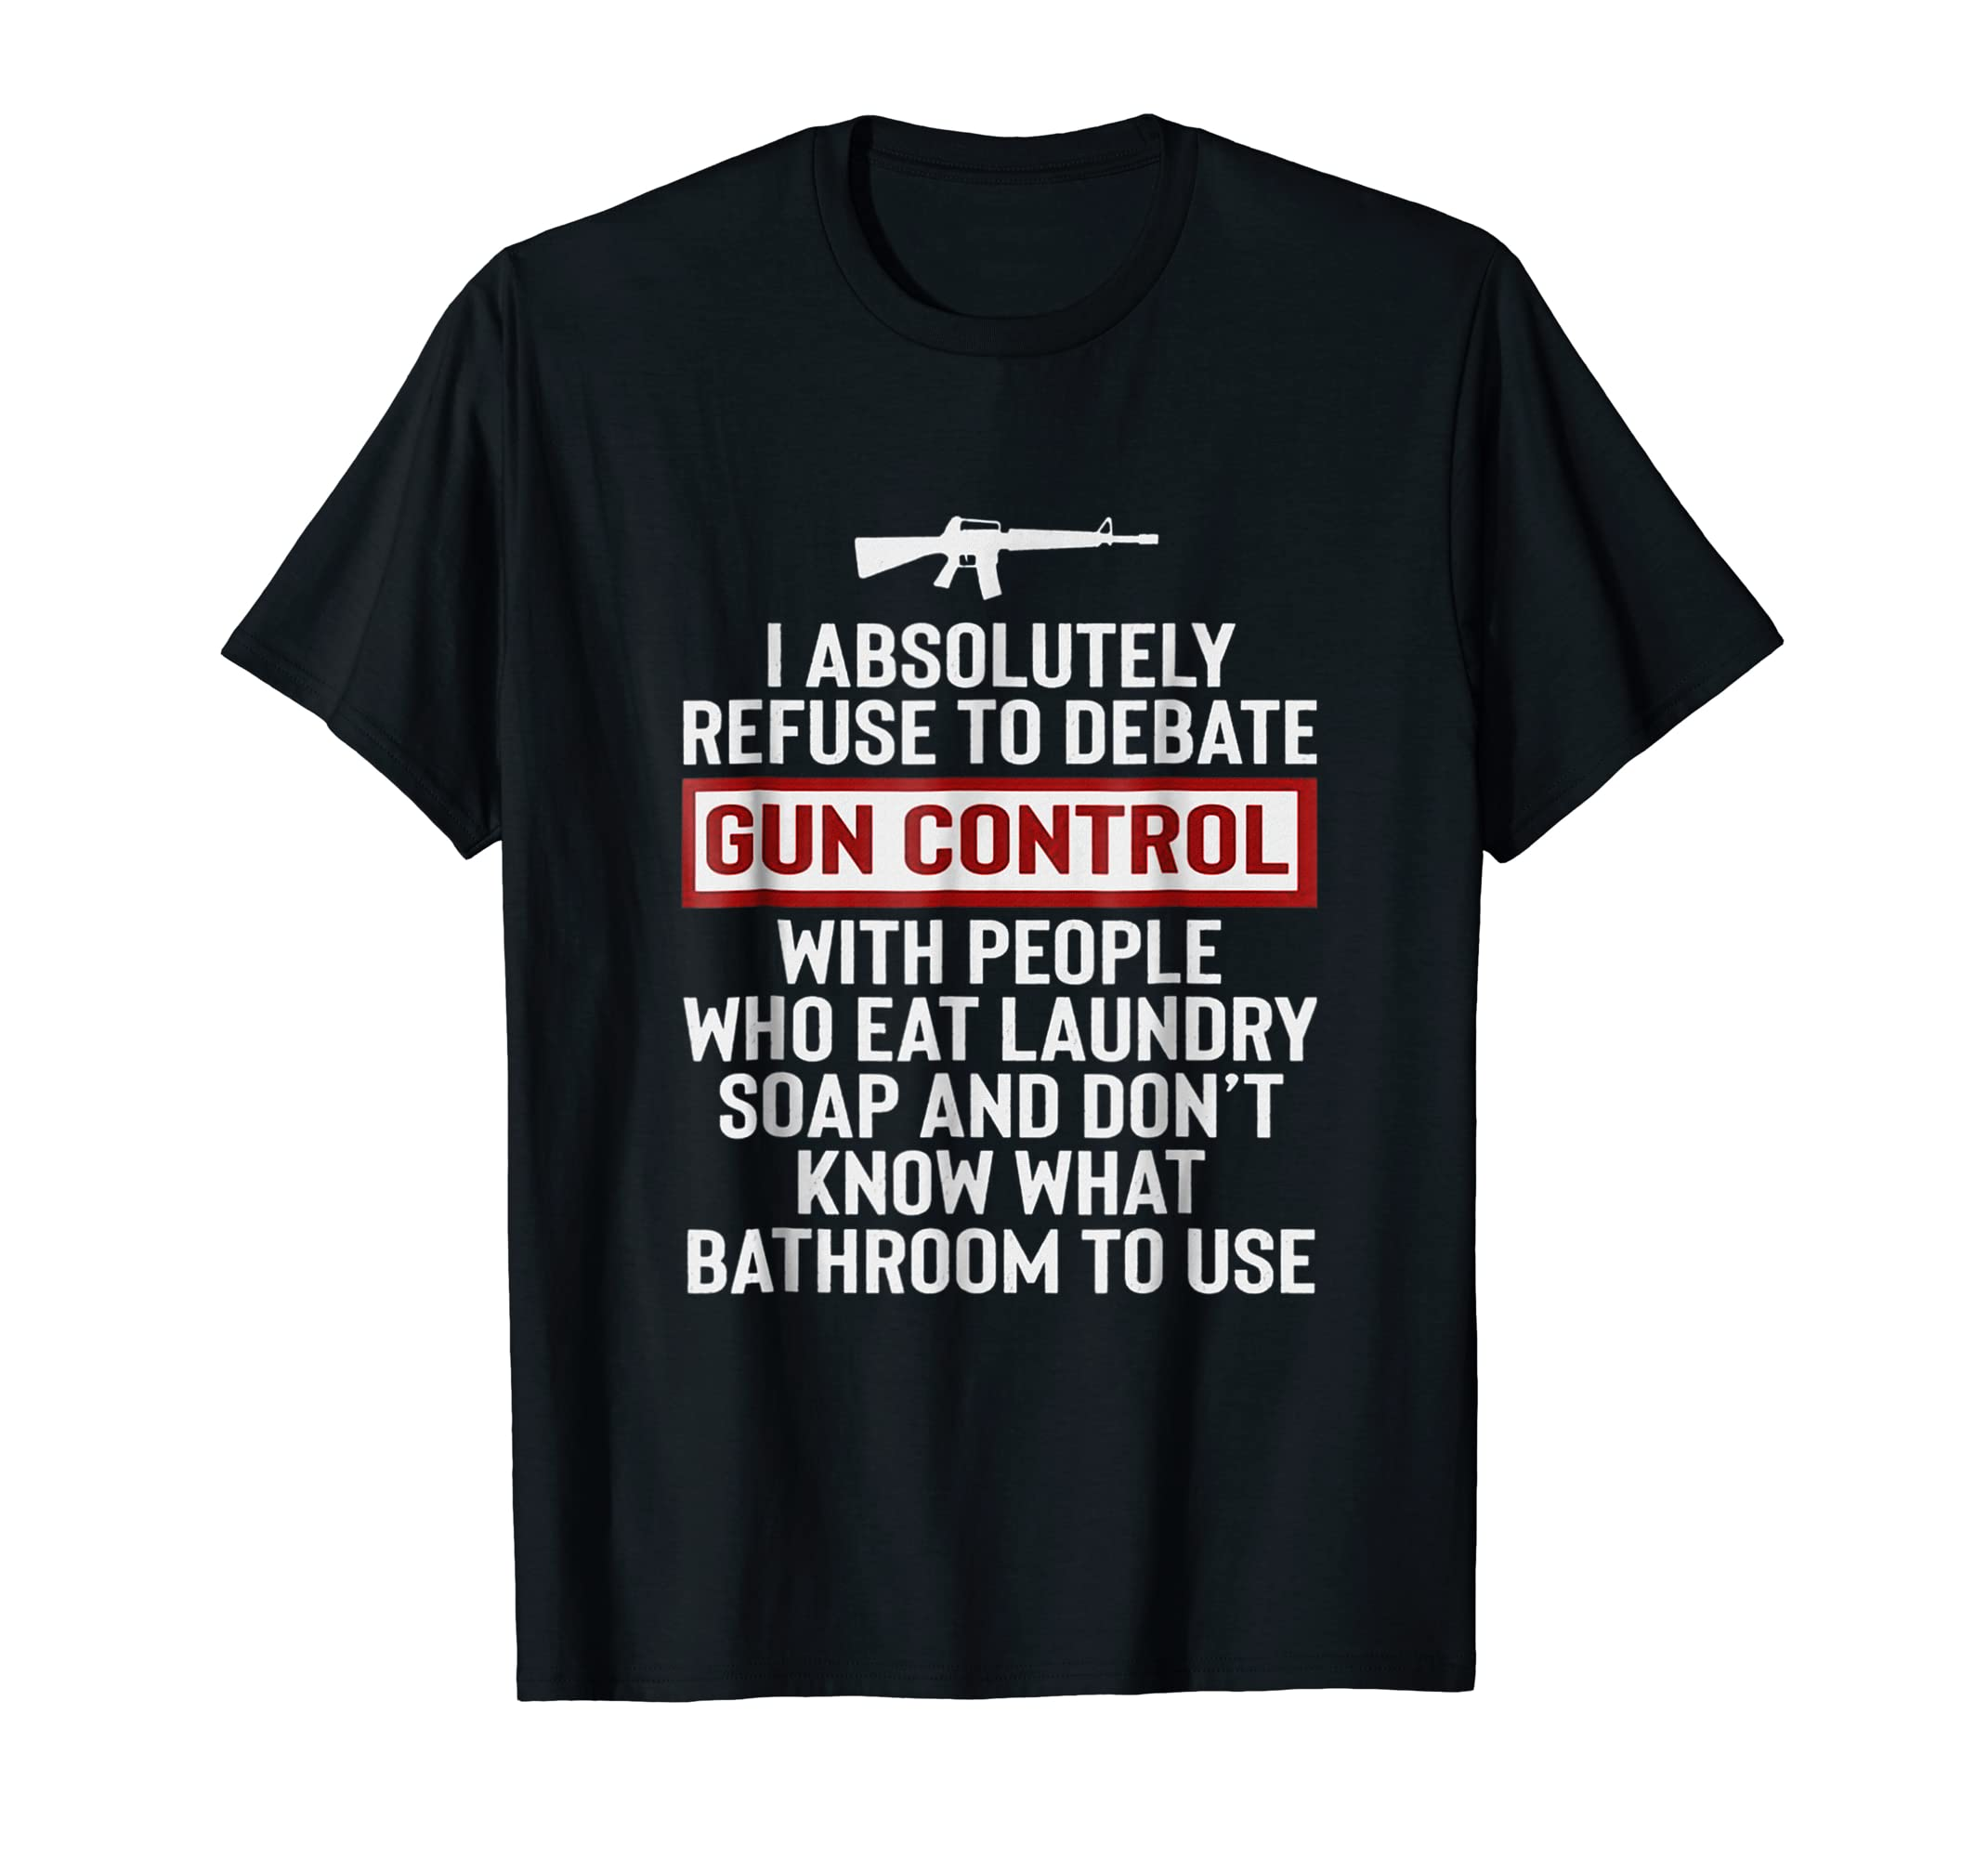 3d5ad134d071 Amazon.com  I Absolutely Refuse To Debate Gun Control T-shirt  Clothing